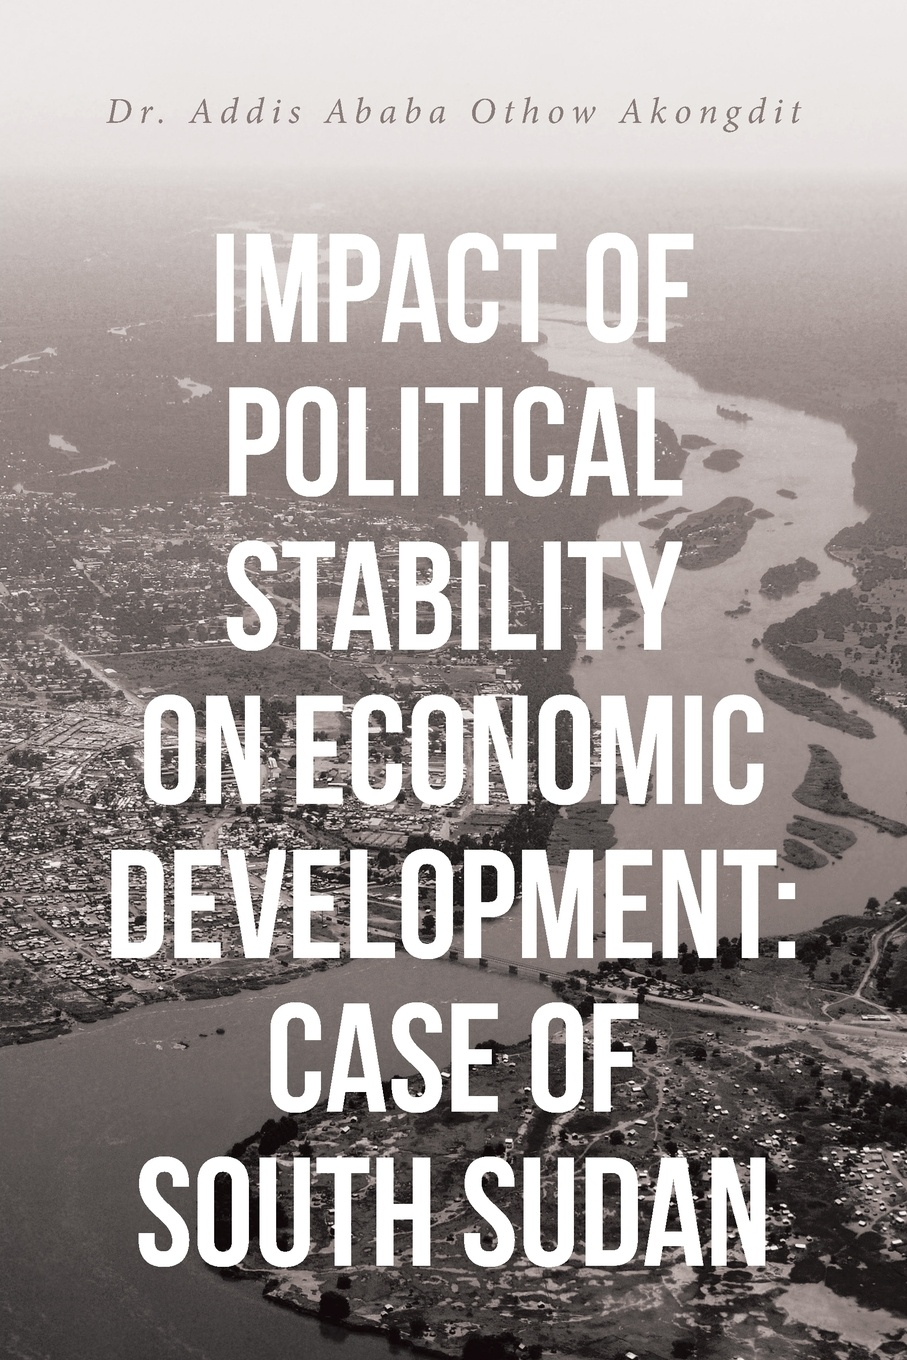 Dr. Addis Ababa Othow Akongdit Impact of Political Stability on Economic Development. Case of South Sudan economic and political impacts of business improvement district